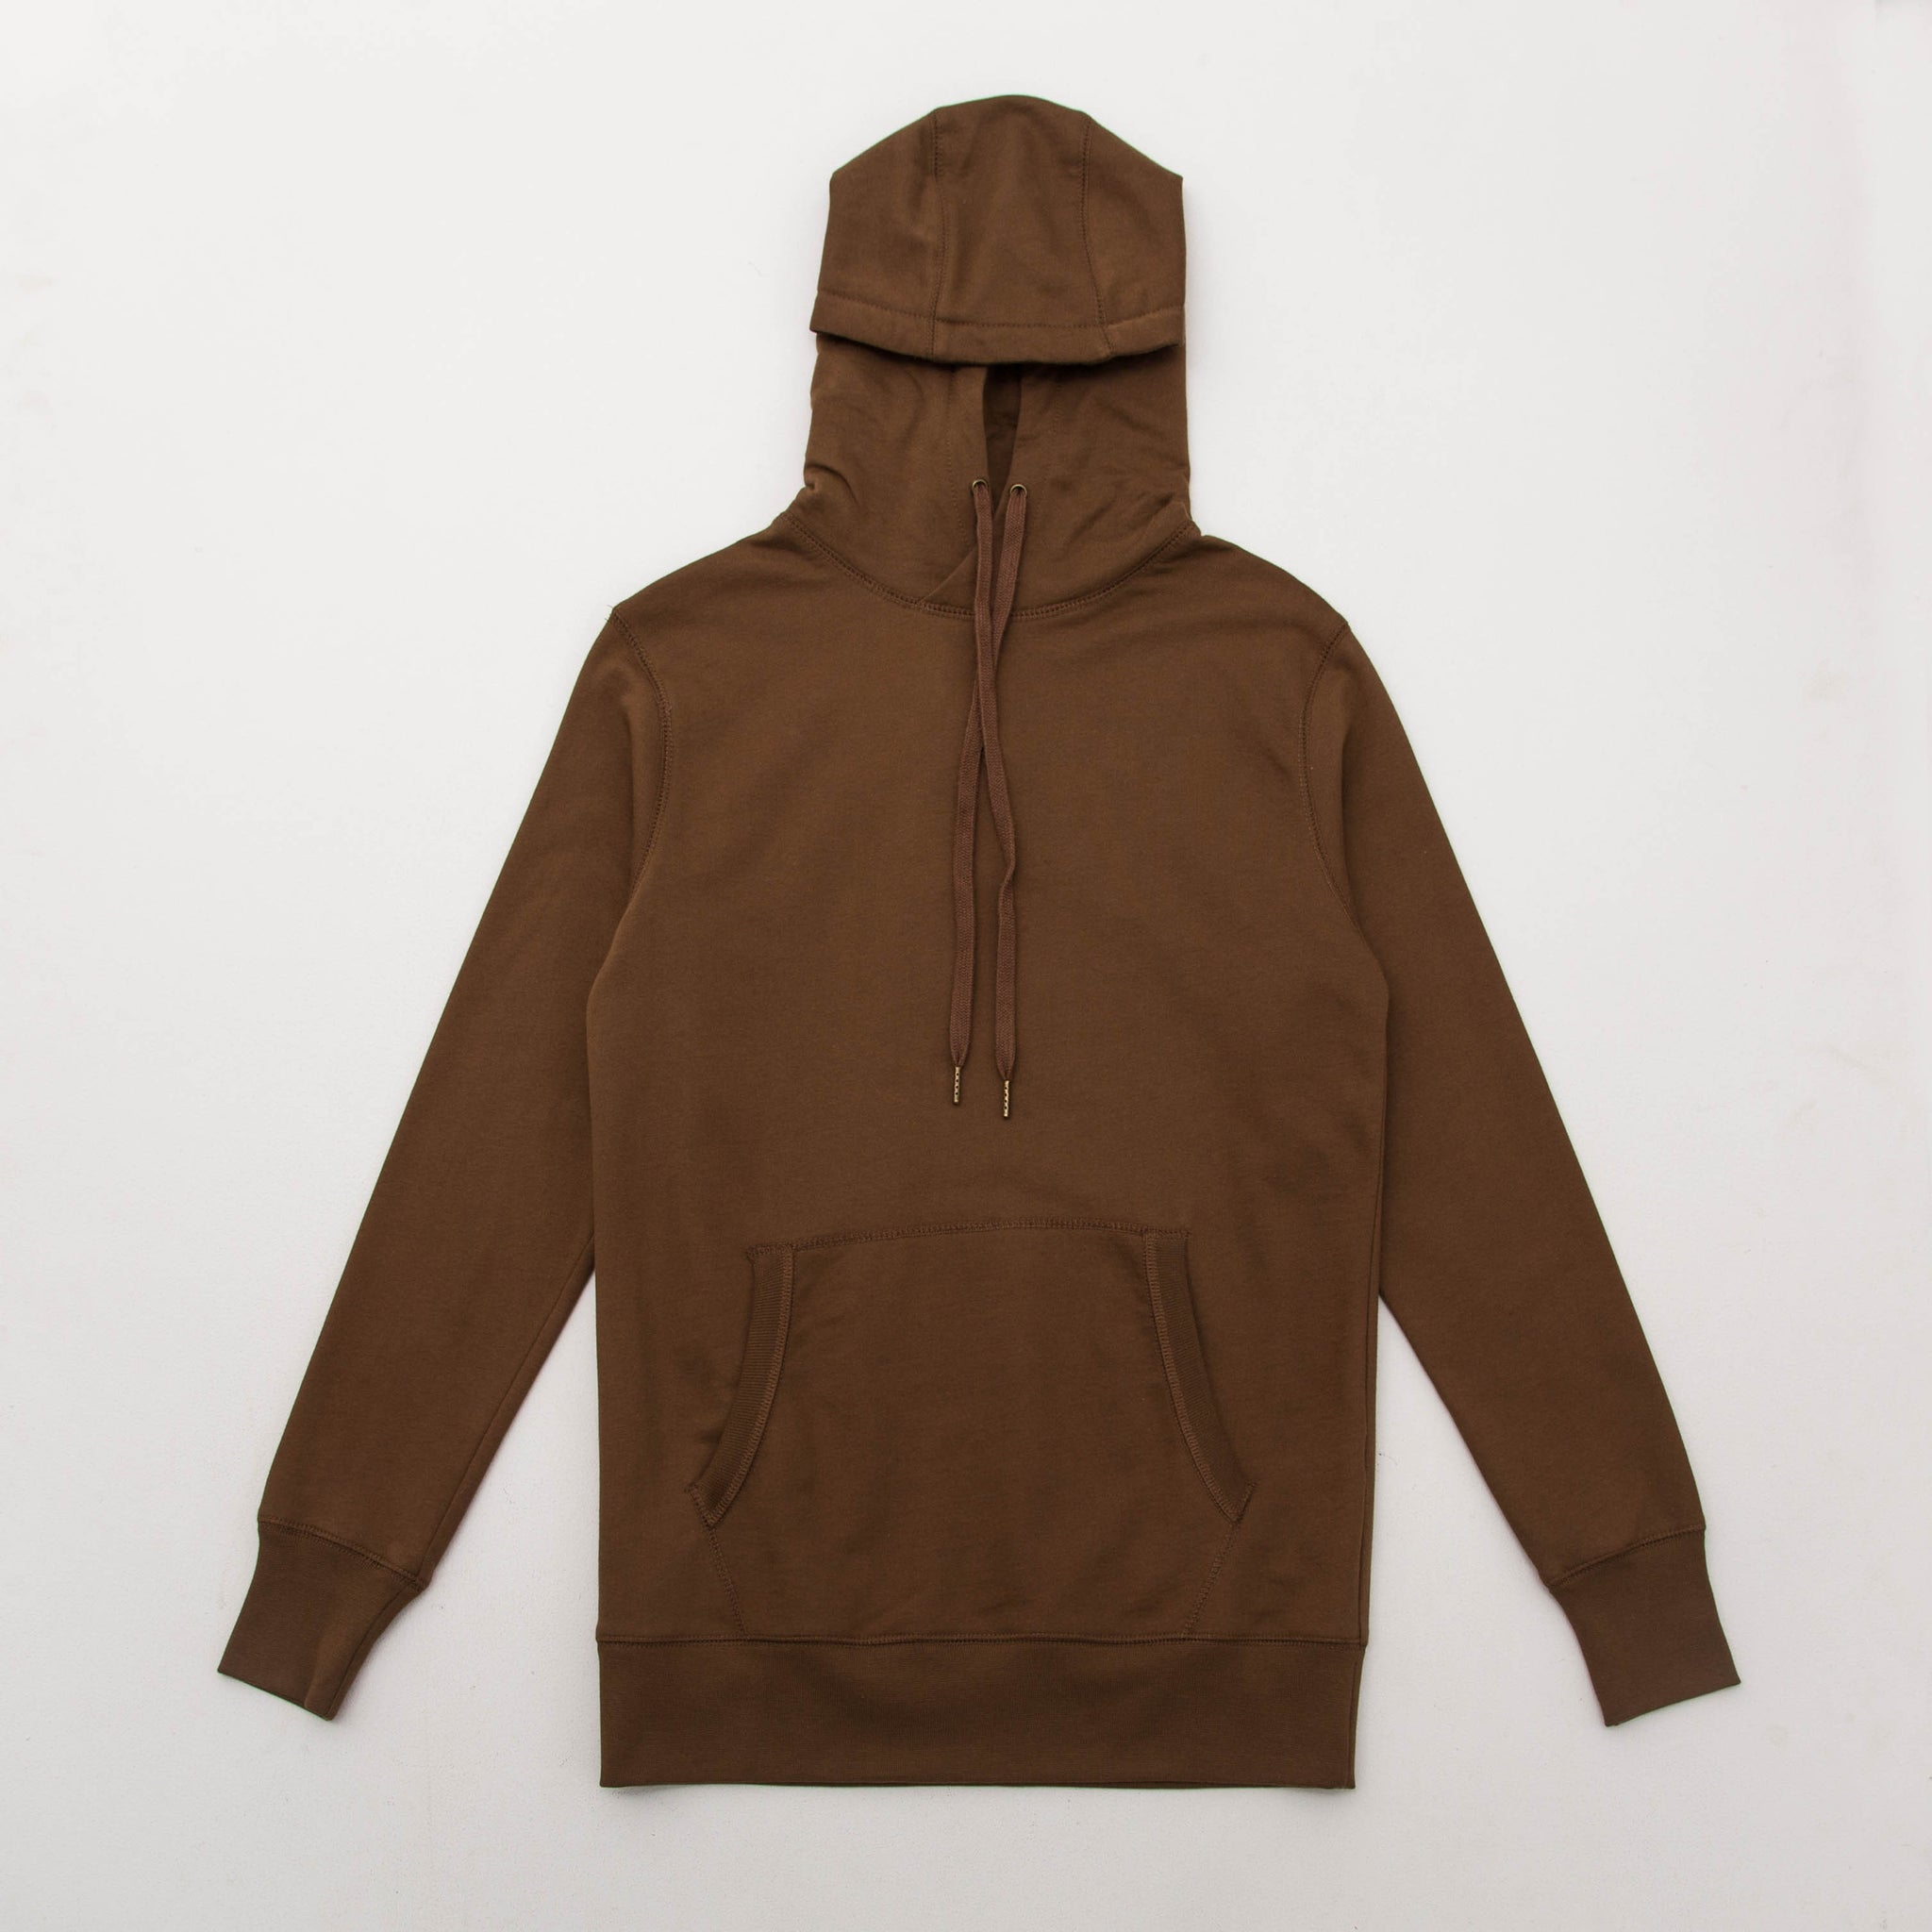 Classic Pullover Hoody - Brown - A Store